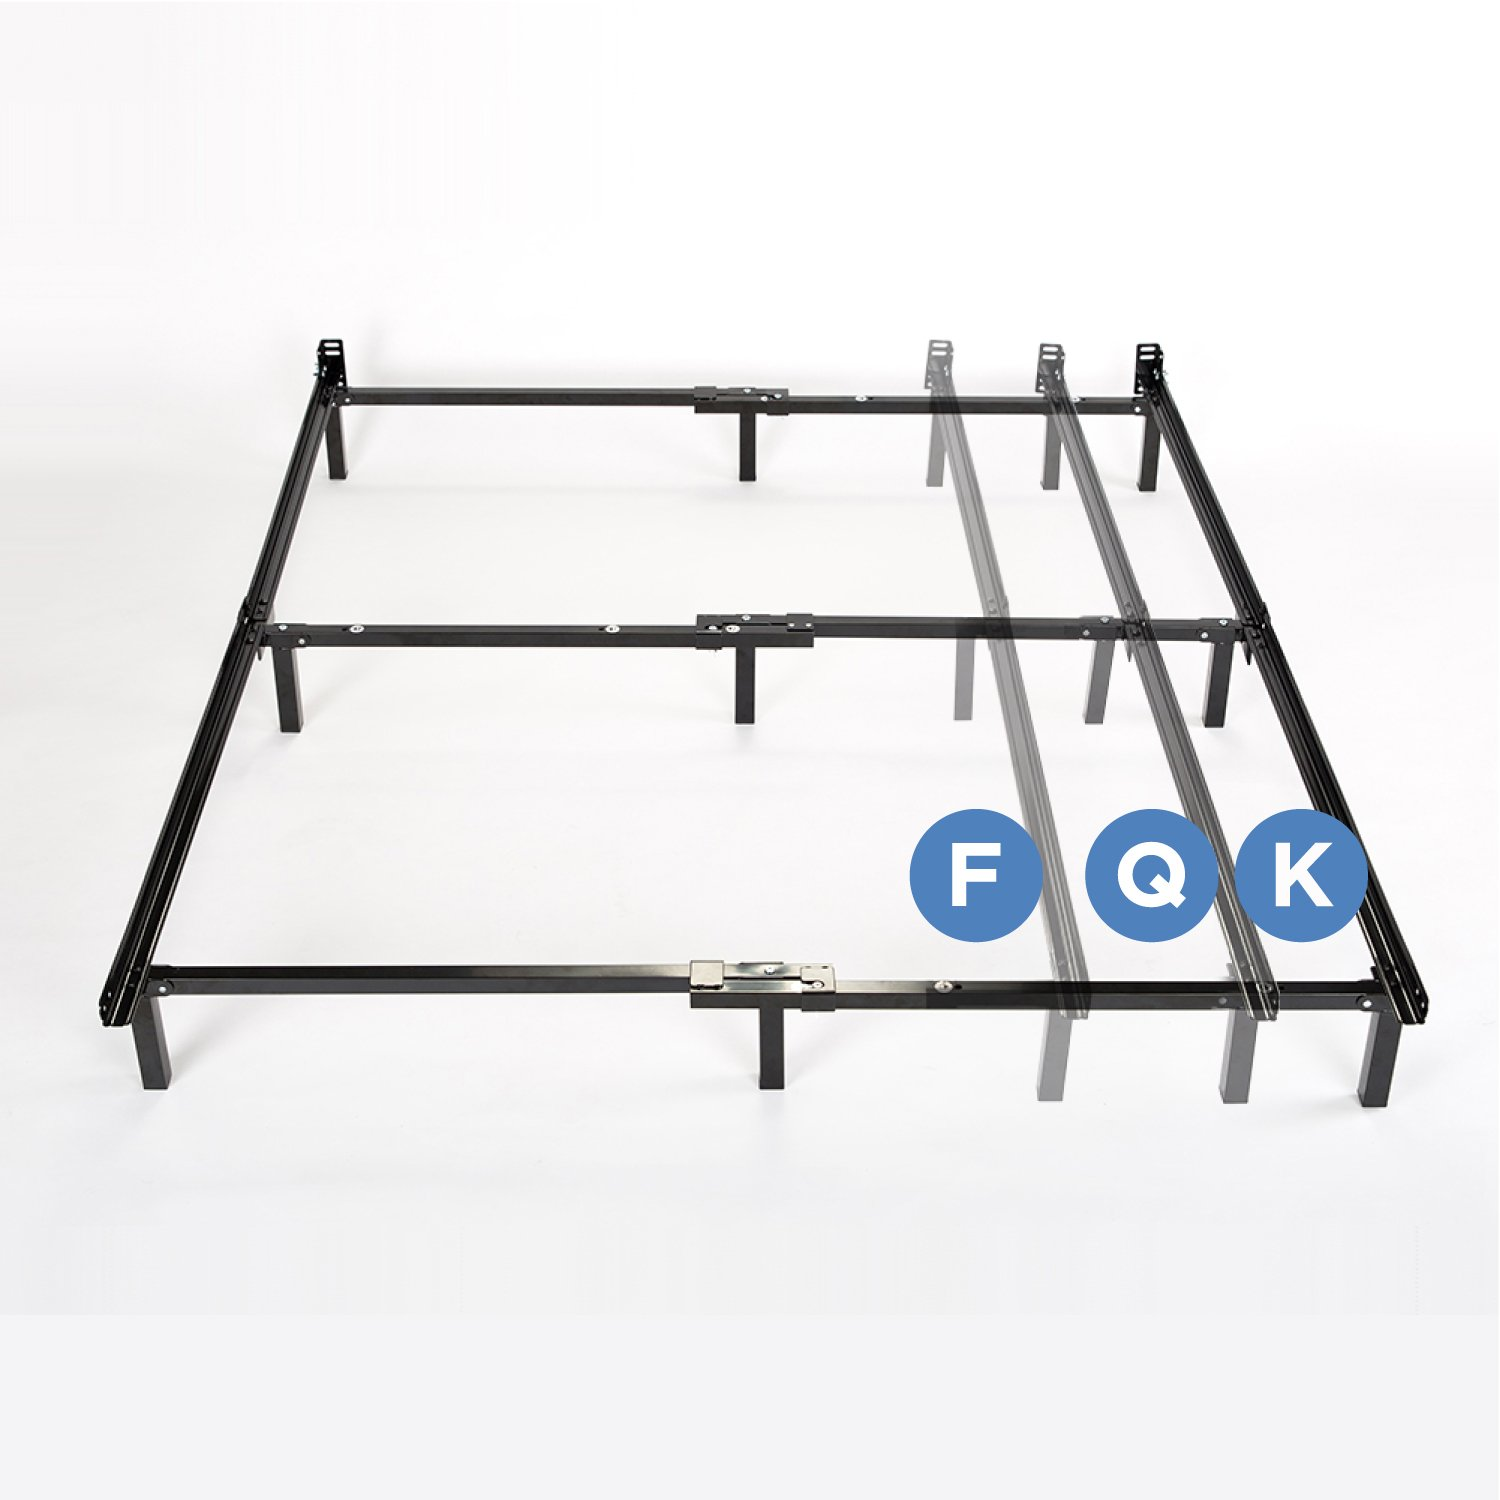 Compack Adjustable Steel Bed Frame, Fits Full to King by Sleep Revolution